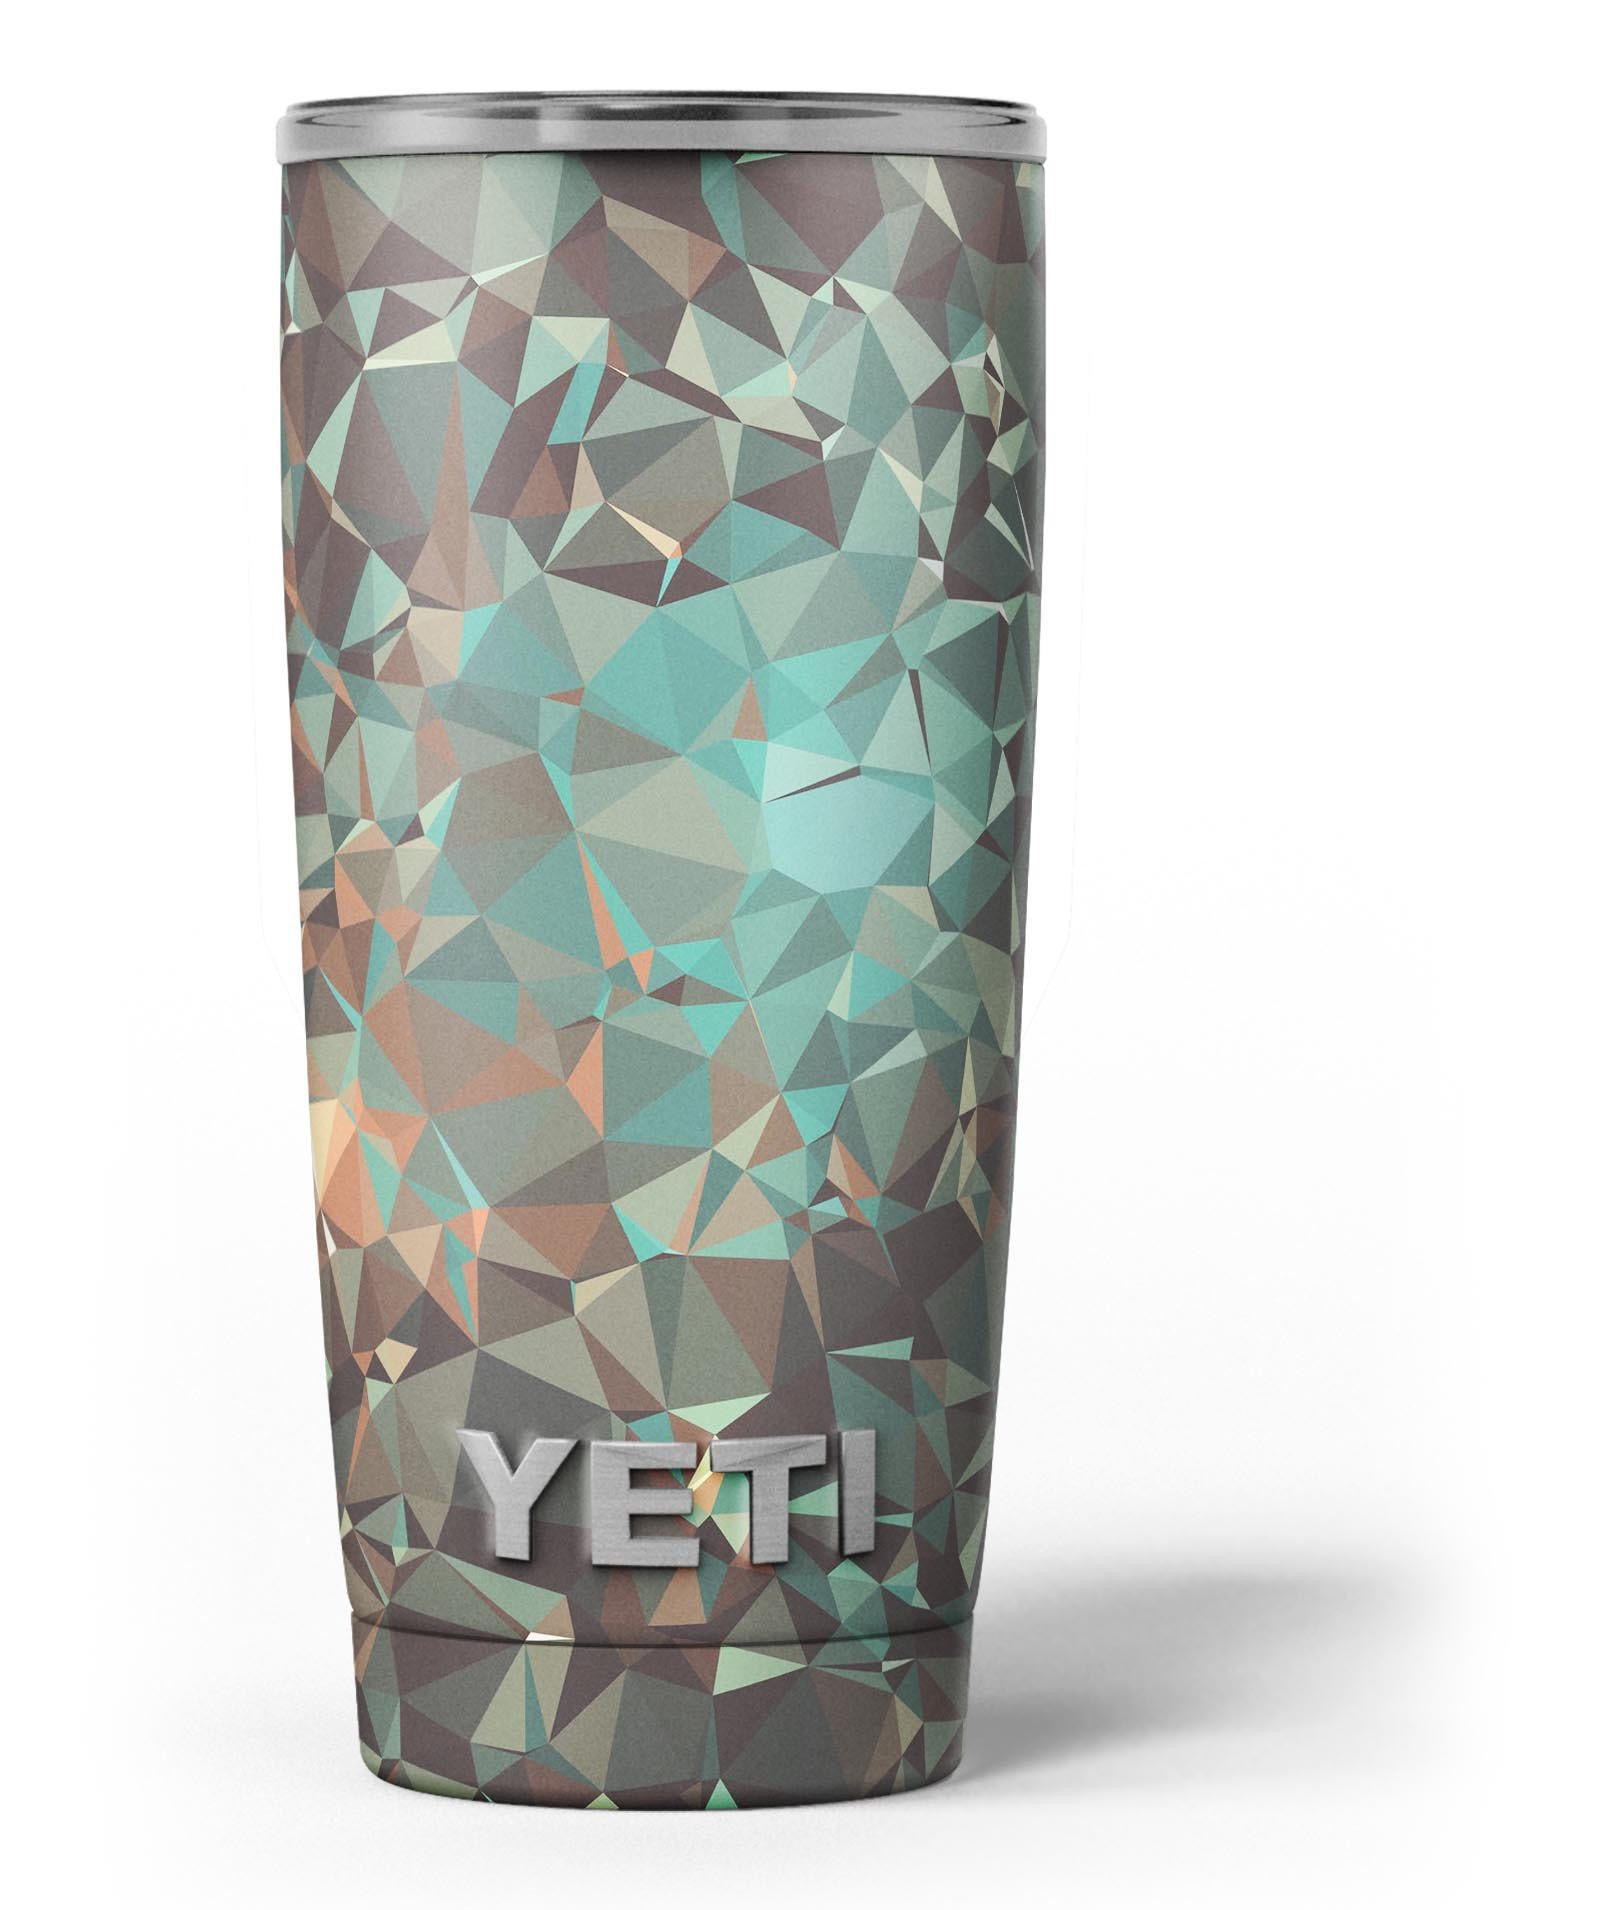 Image of Abstract MultiColor Geometric Shapes Pattern - Skin Decal Vinyl Wrap Kit compatible with the Yeti Rambler Cooler Tumbler Cups